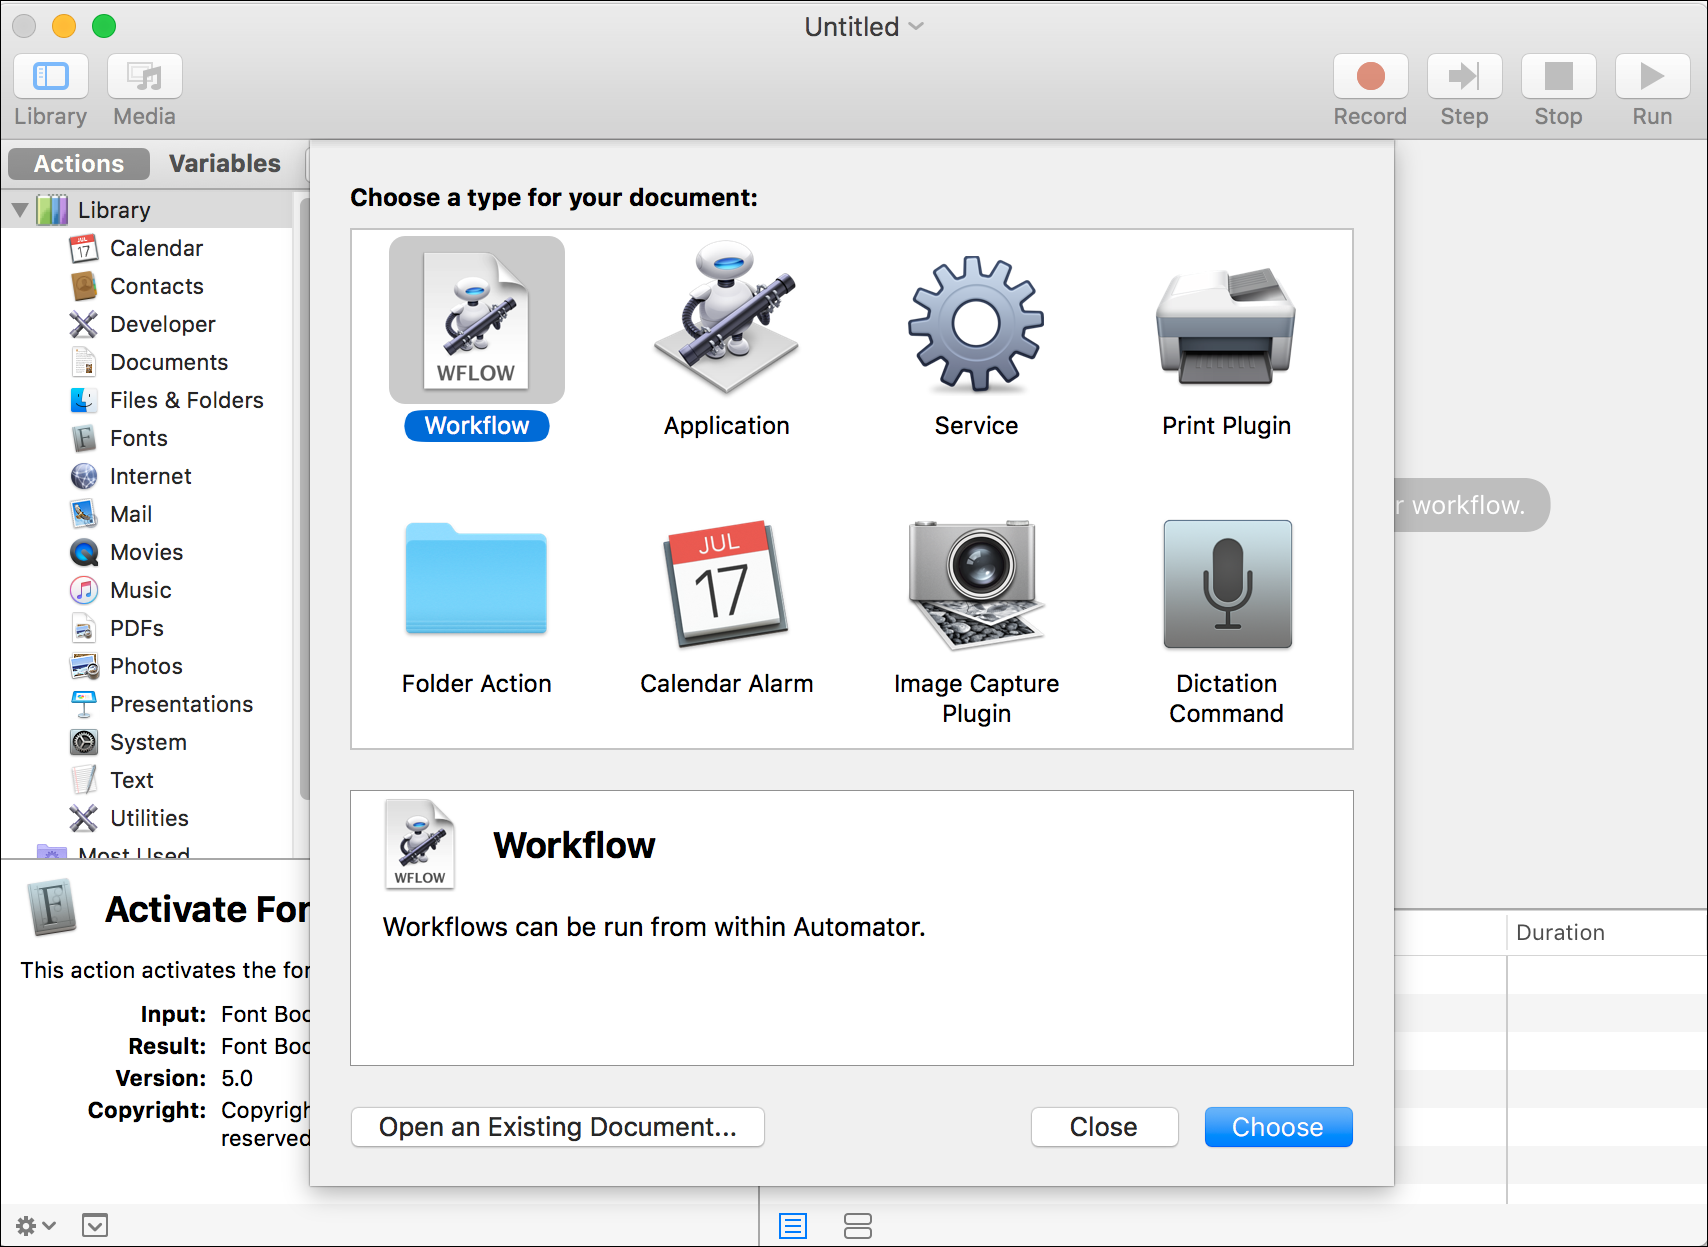 Getting to Know Automator